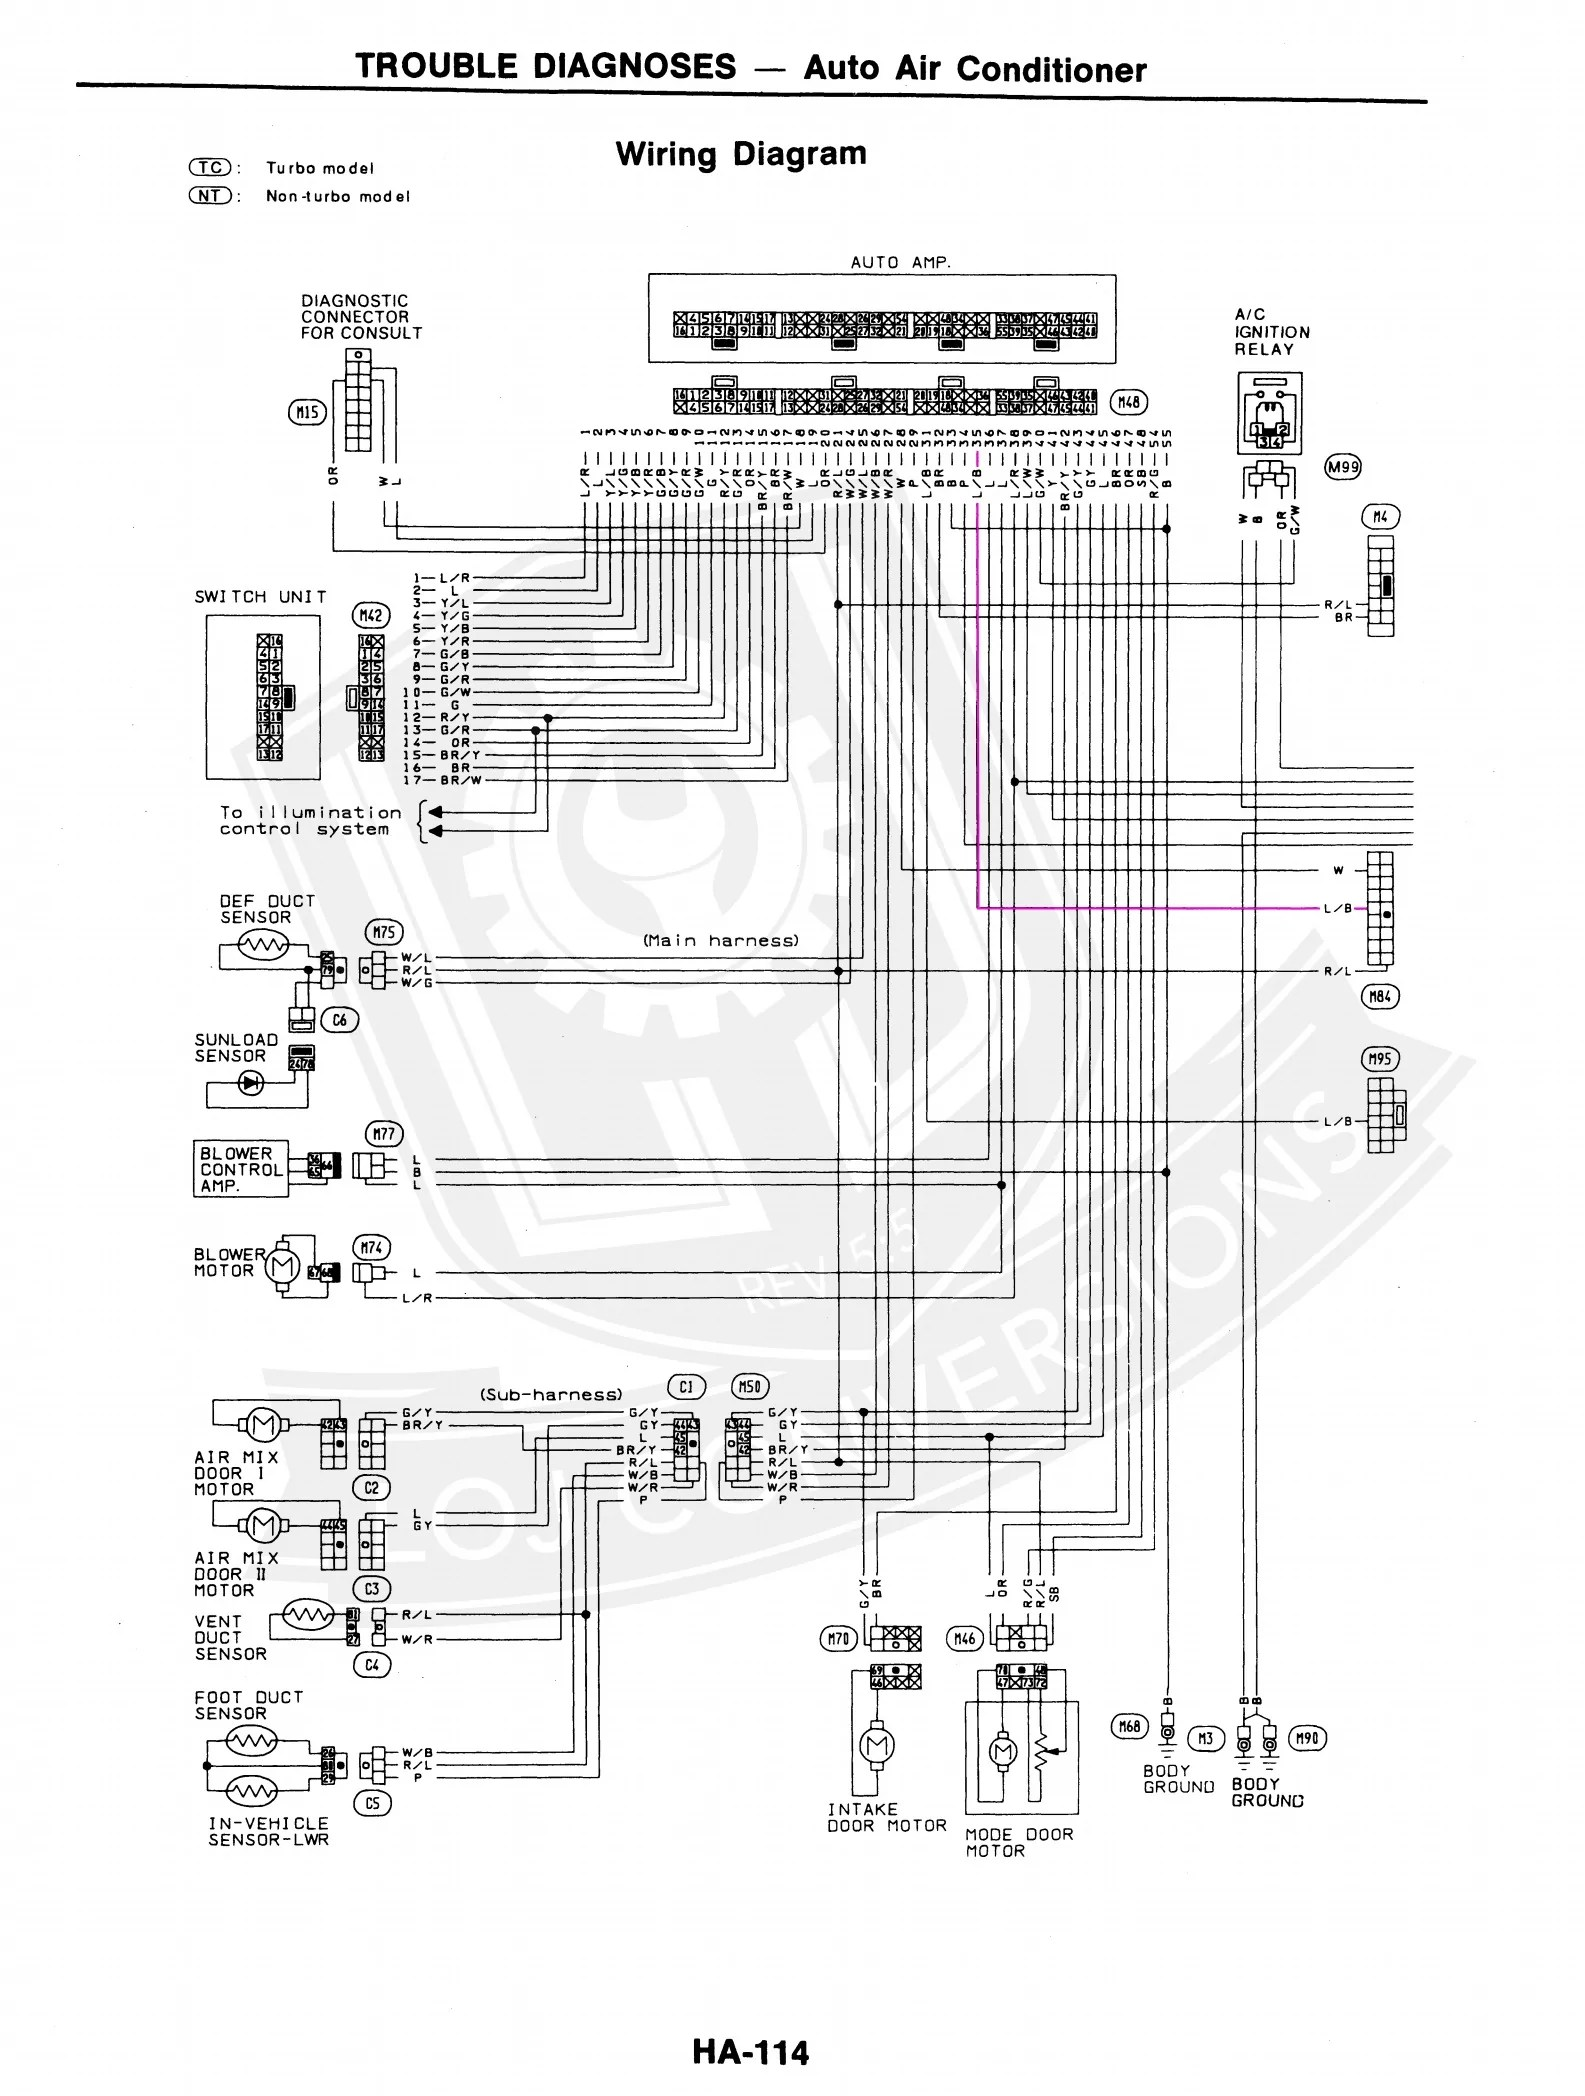 300zx ecu wiring harness diy my wiring diagram 300zx ecu wiring harness diy wiring diagrams value [ 1585 x 2096 Pixel ]